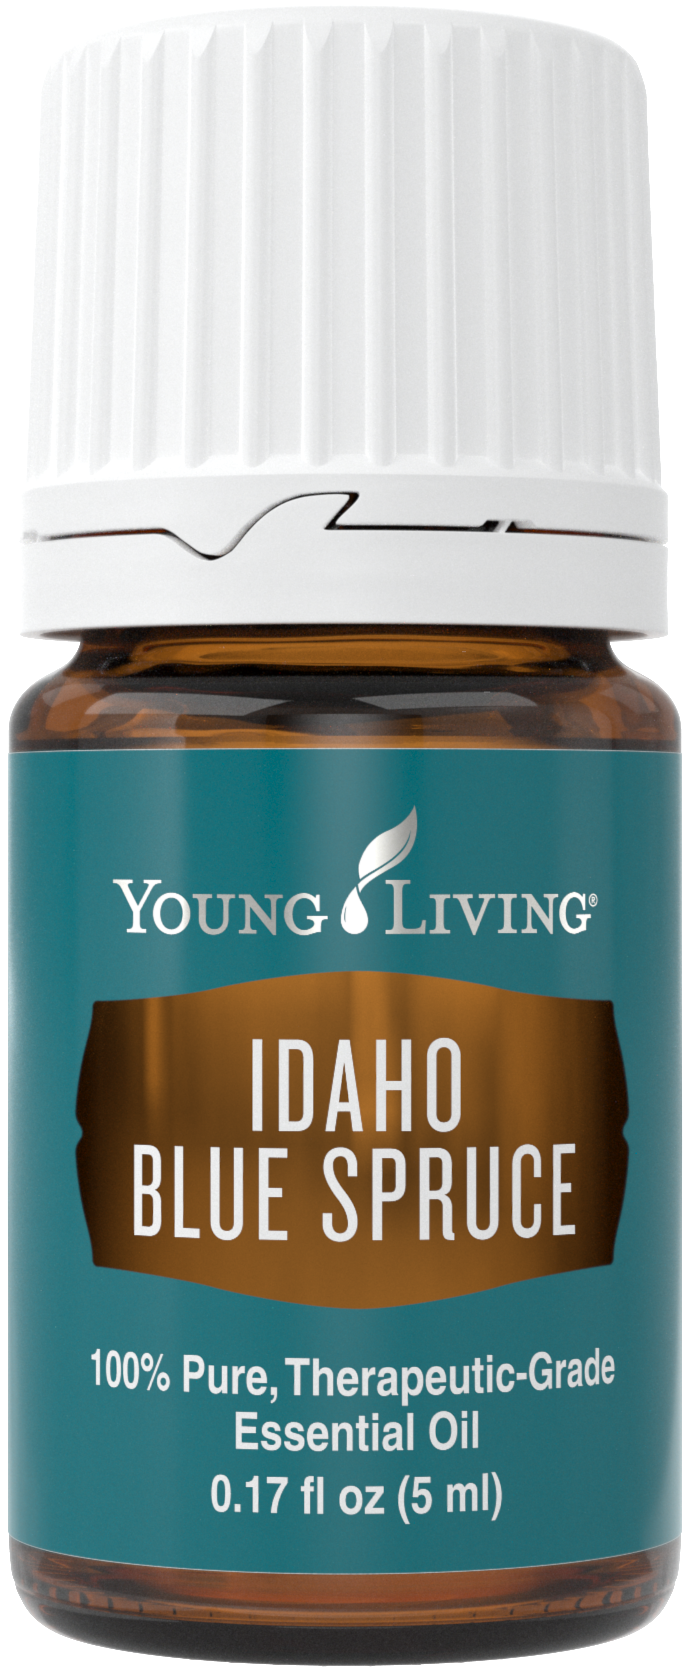 Idaho Blue Spruce.png